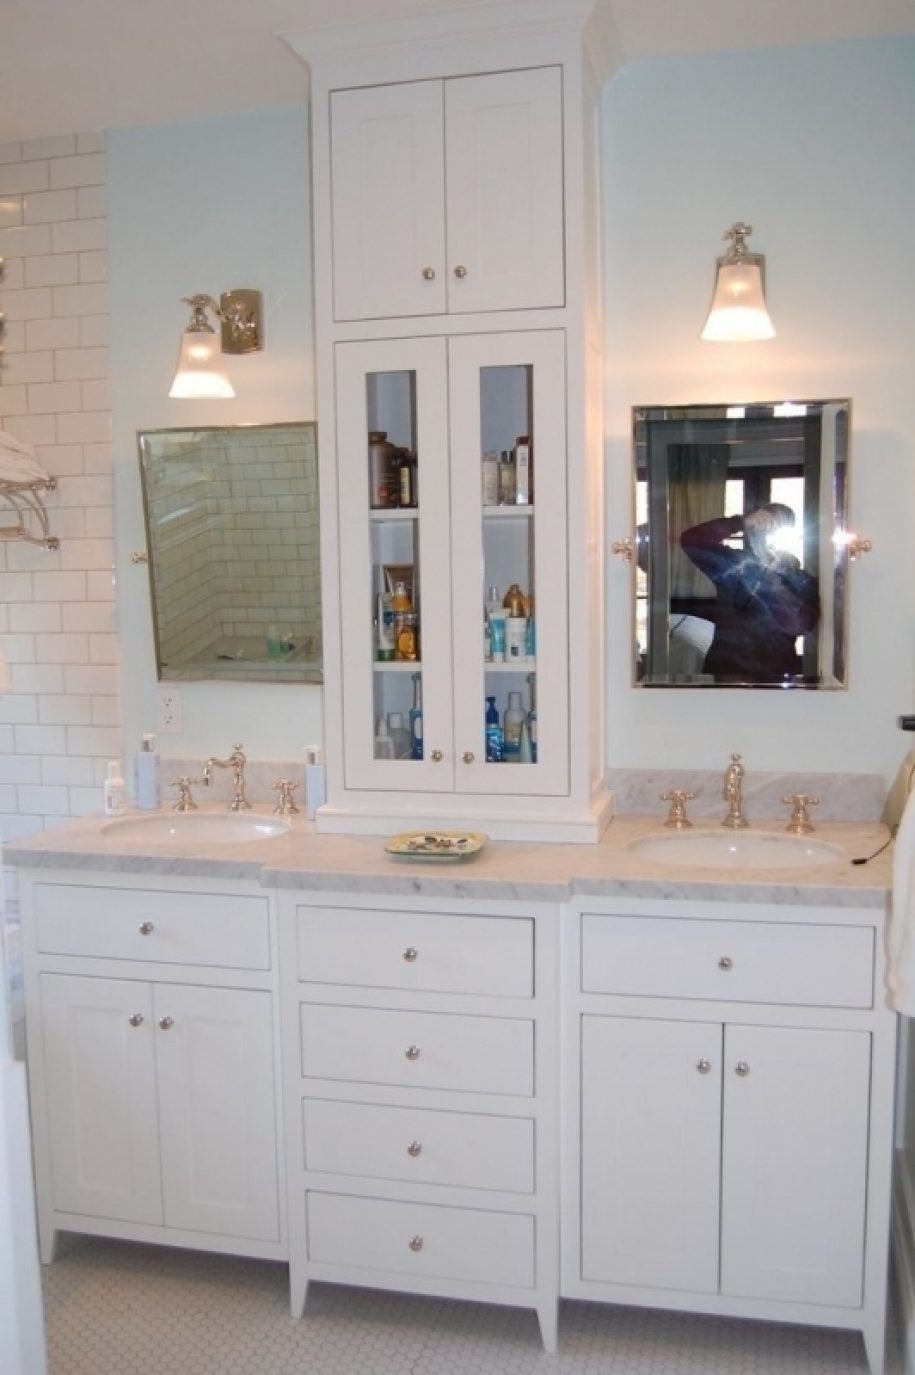 Radiant Ideas About Bathroom Counter Storage Tower D Bathroom Counter Under Counter Bathroom Sto Custom Bathroom Vanity Bathroom Vanity Storage Custom Bathroom